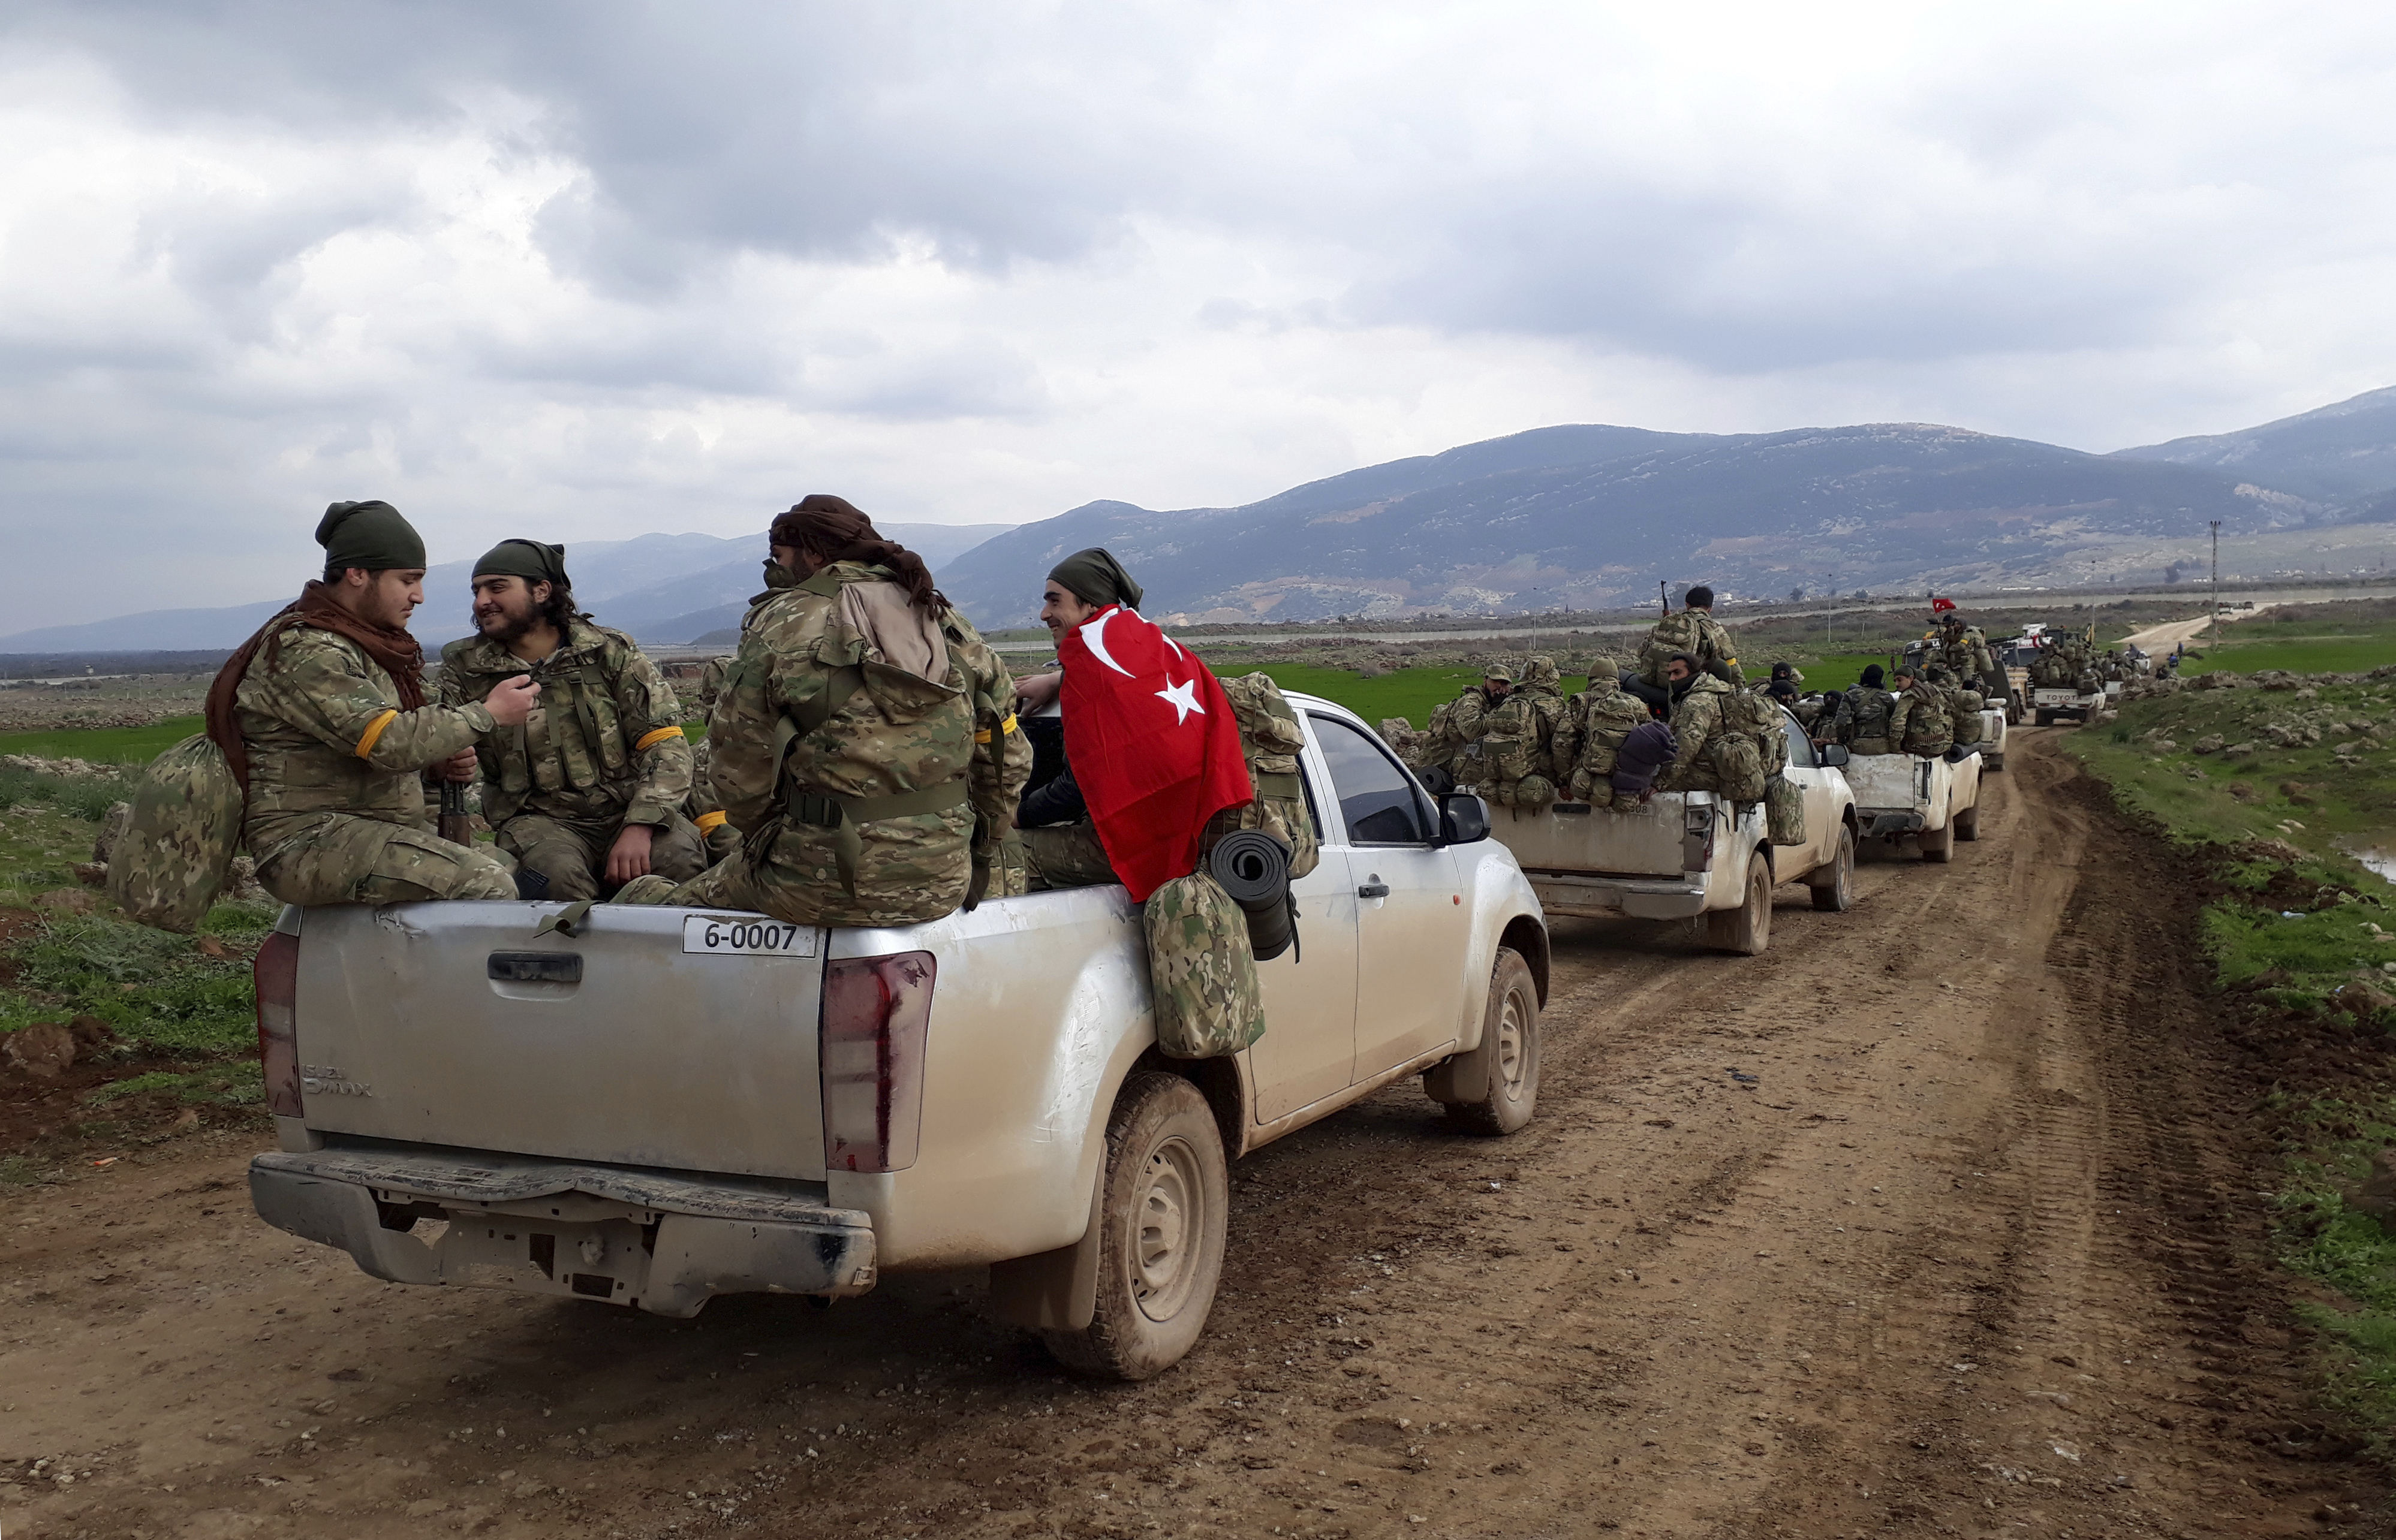 Turkey-backed Free Syrian Army fighters head towards the Syrian border in Kirikhan, Turkey (Furkan Arslanoglu/Depo Photos via AP)